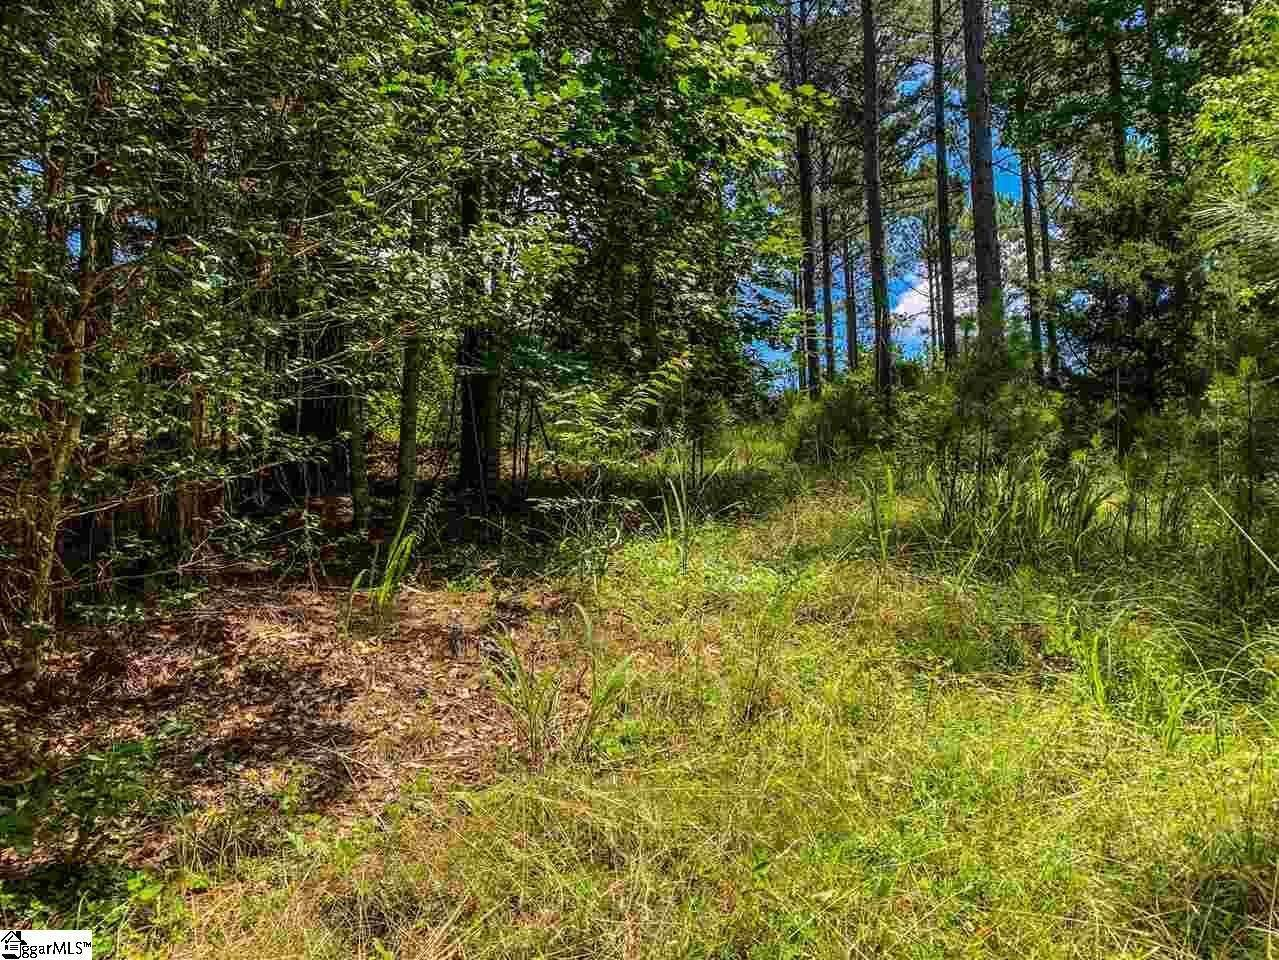 2. Residential Lot for Sale at The Cliffs At Keowee Springs, Six Mile, SC 29682